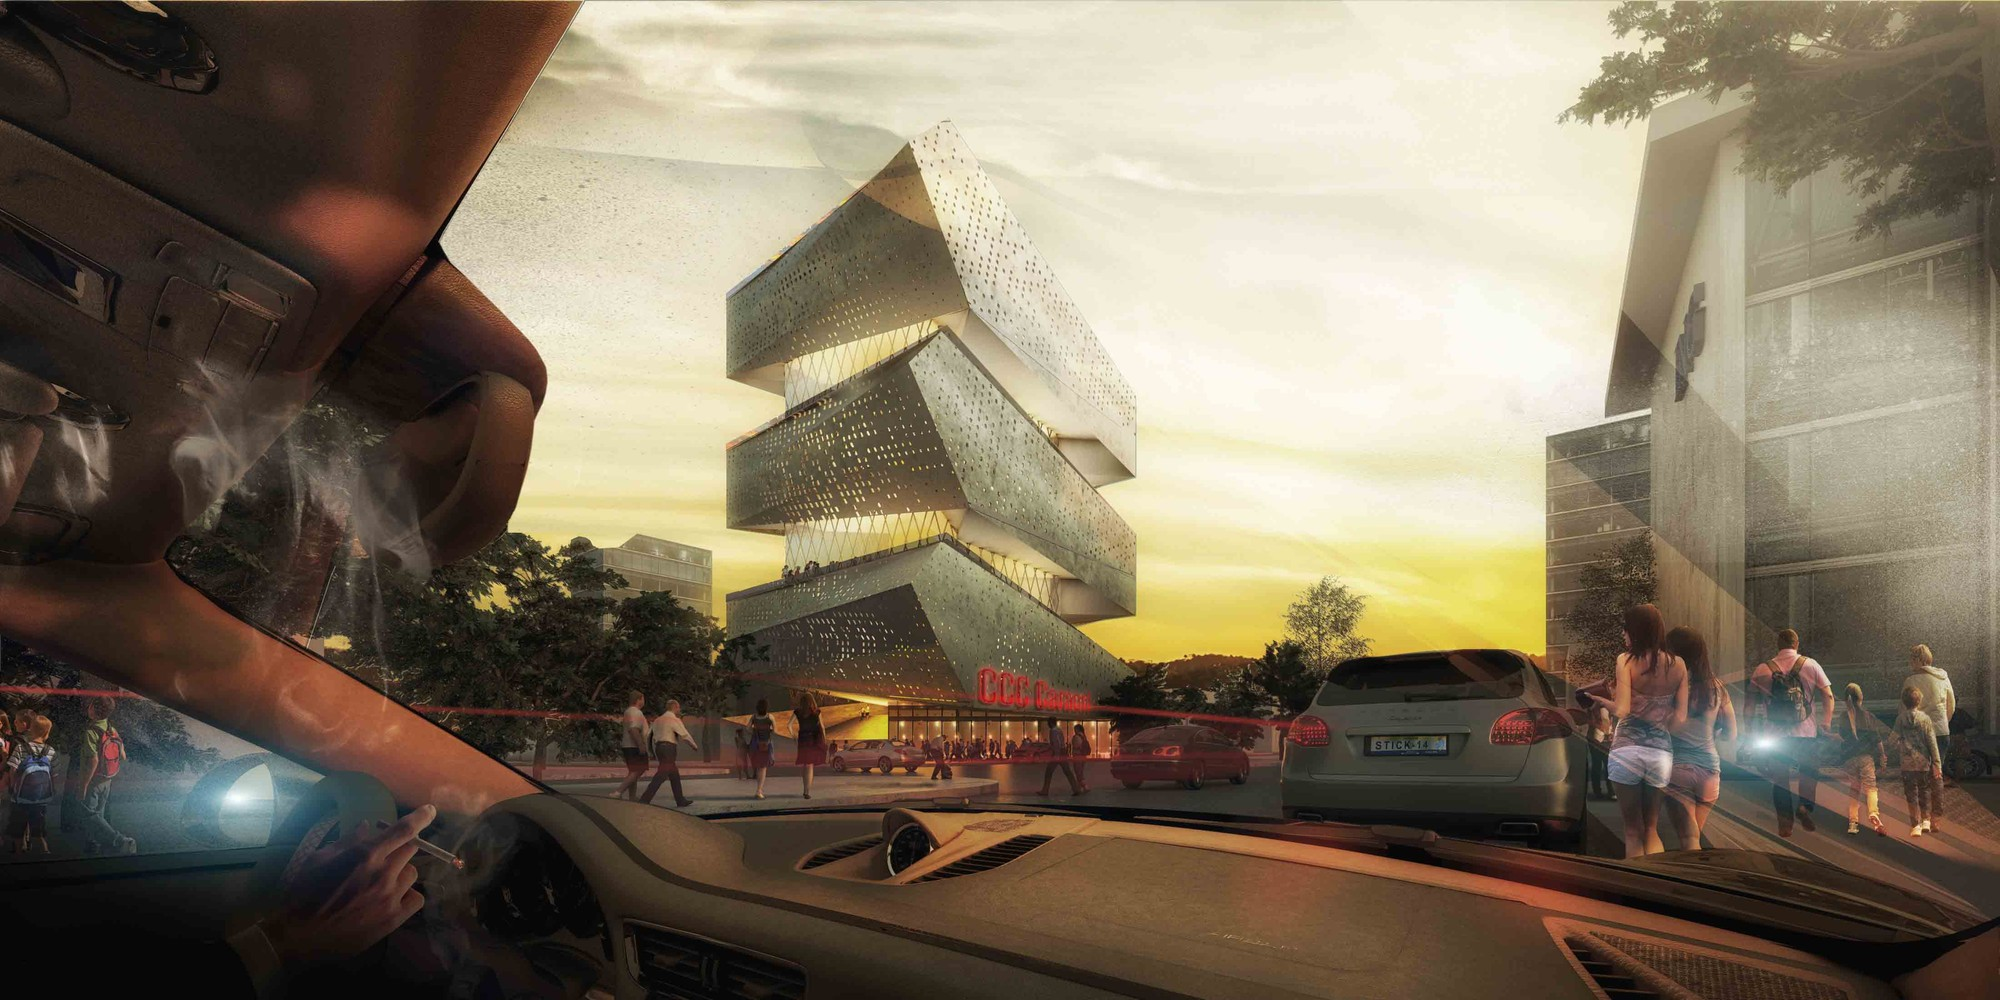 Cultural Center in Guadalajara Competition Entry / PM²G Architects, Courtesy of PM²G Architects